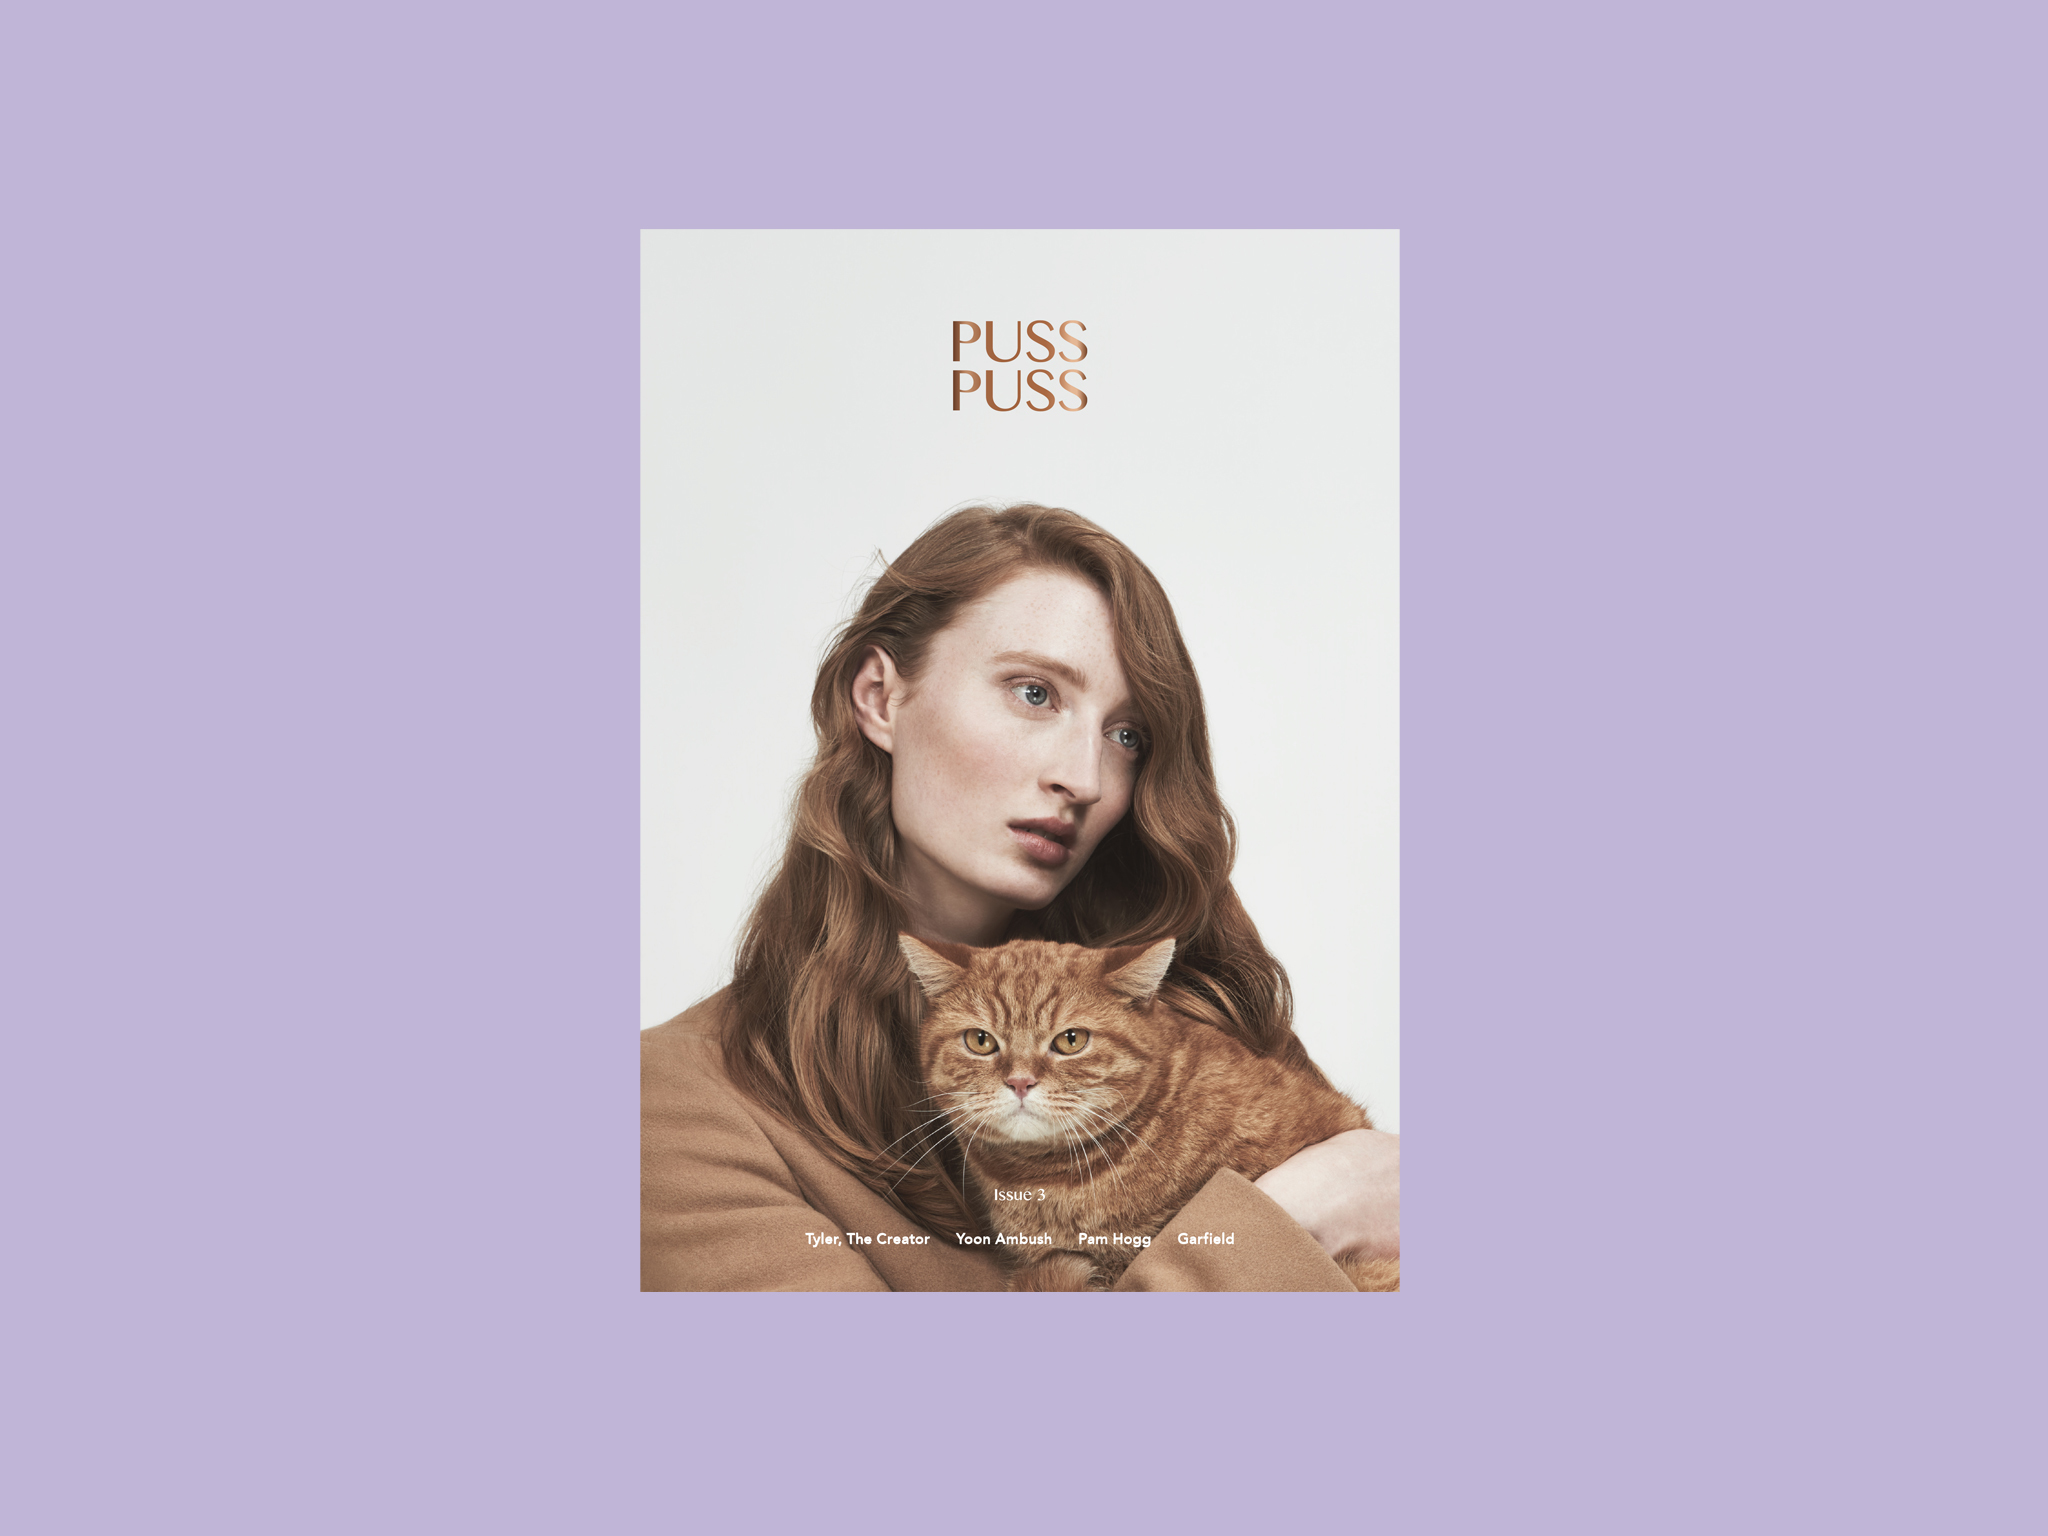 Christmas gift guide: postable presents  - puss puss magazine subscription